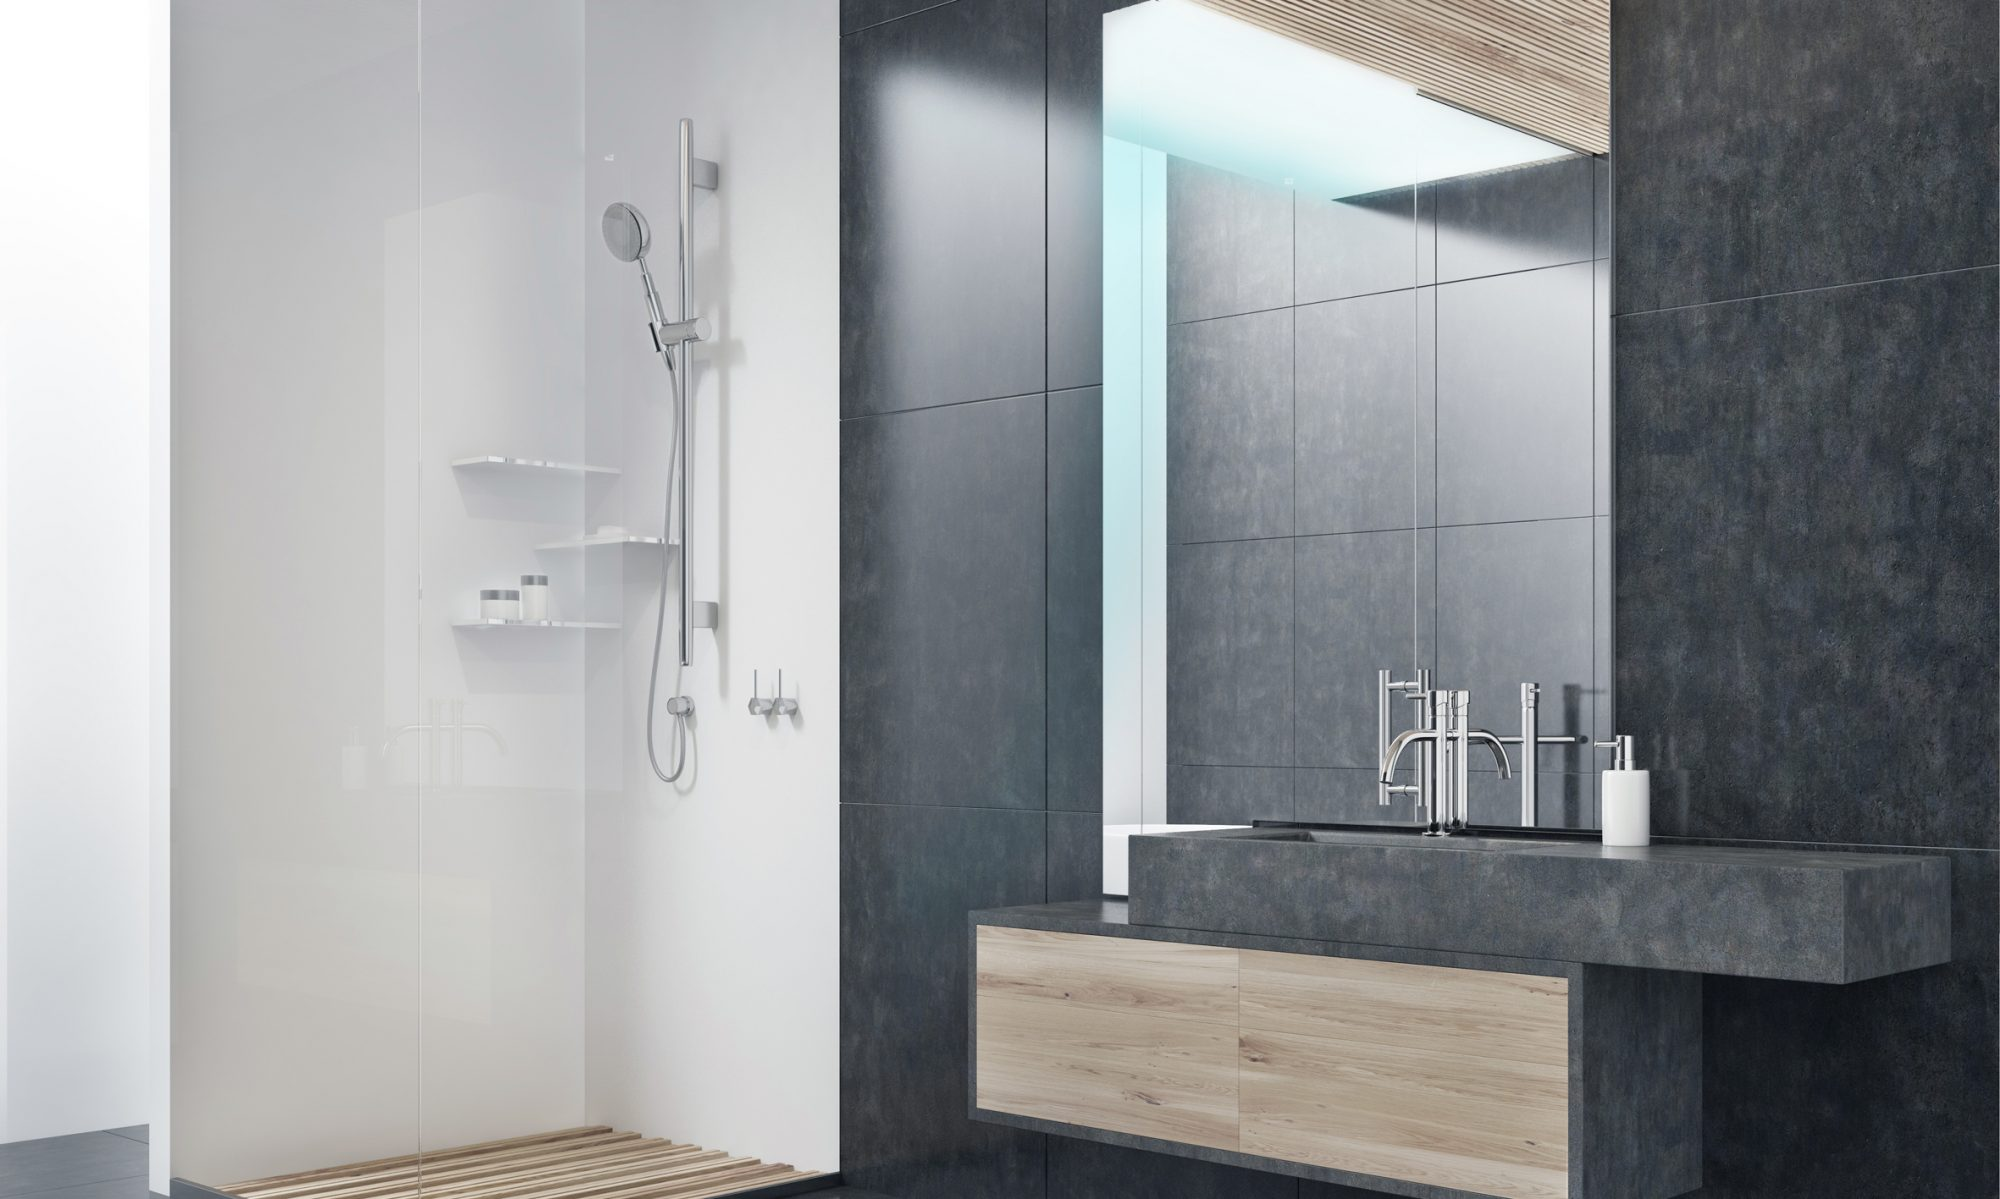 YOUR BATHROOM DESERVES A 5-STAR RENOVATION